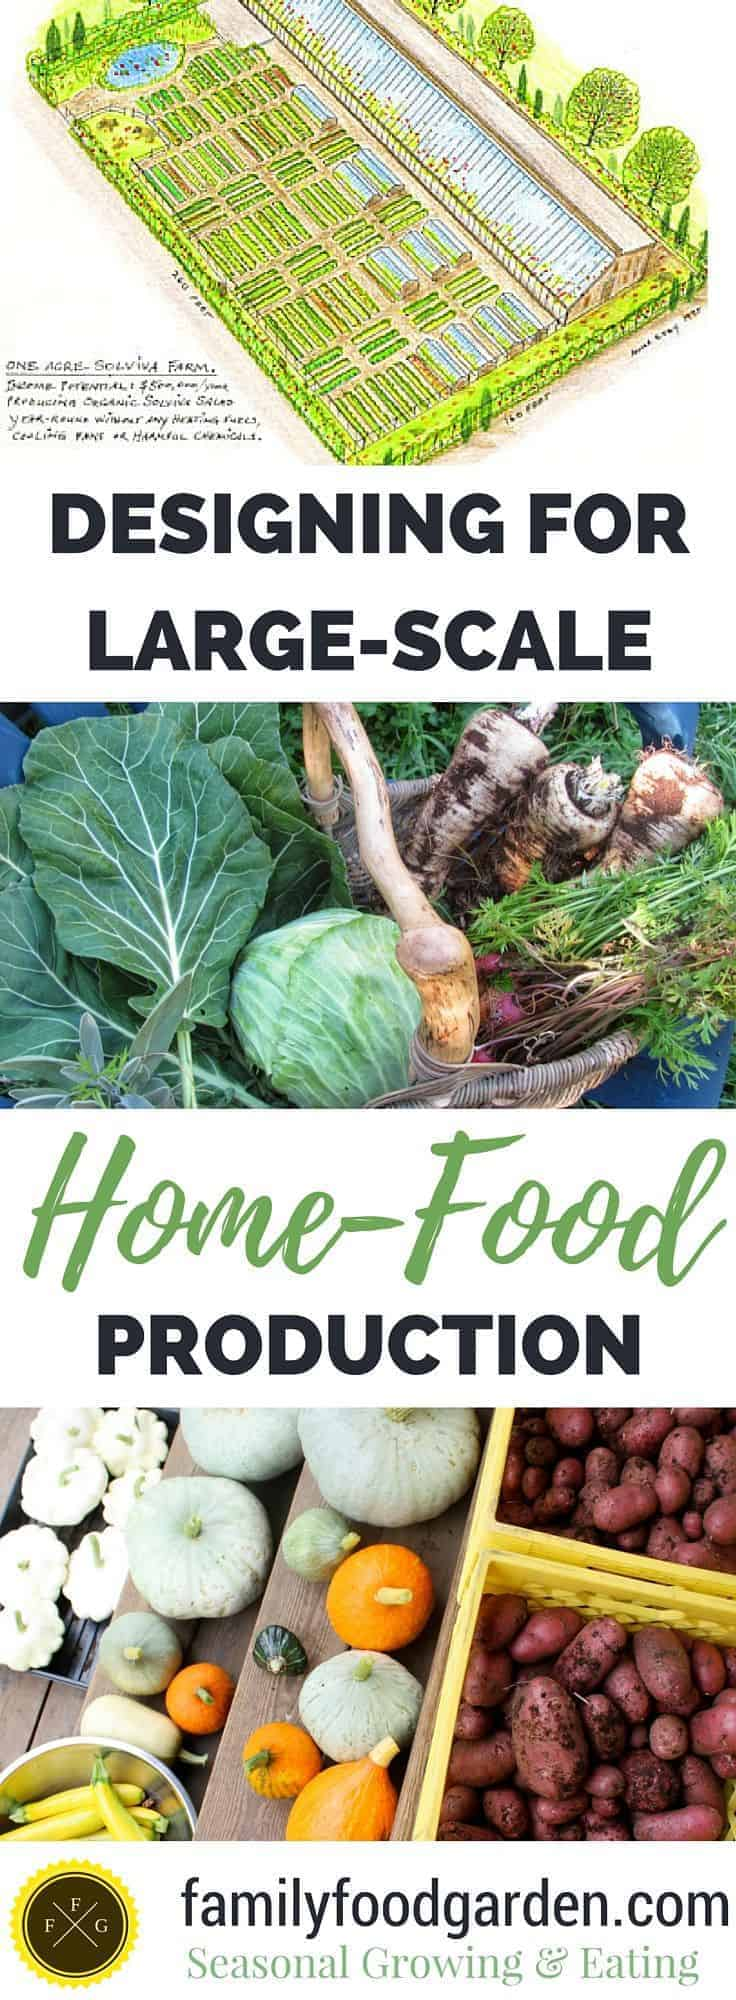 Achieving large-scale food production by growing all of your fruits & vegetables on 1 acre